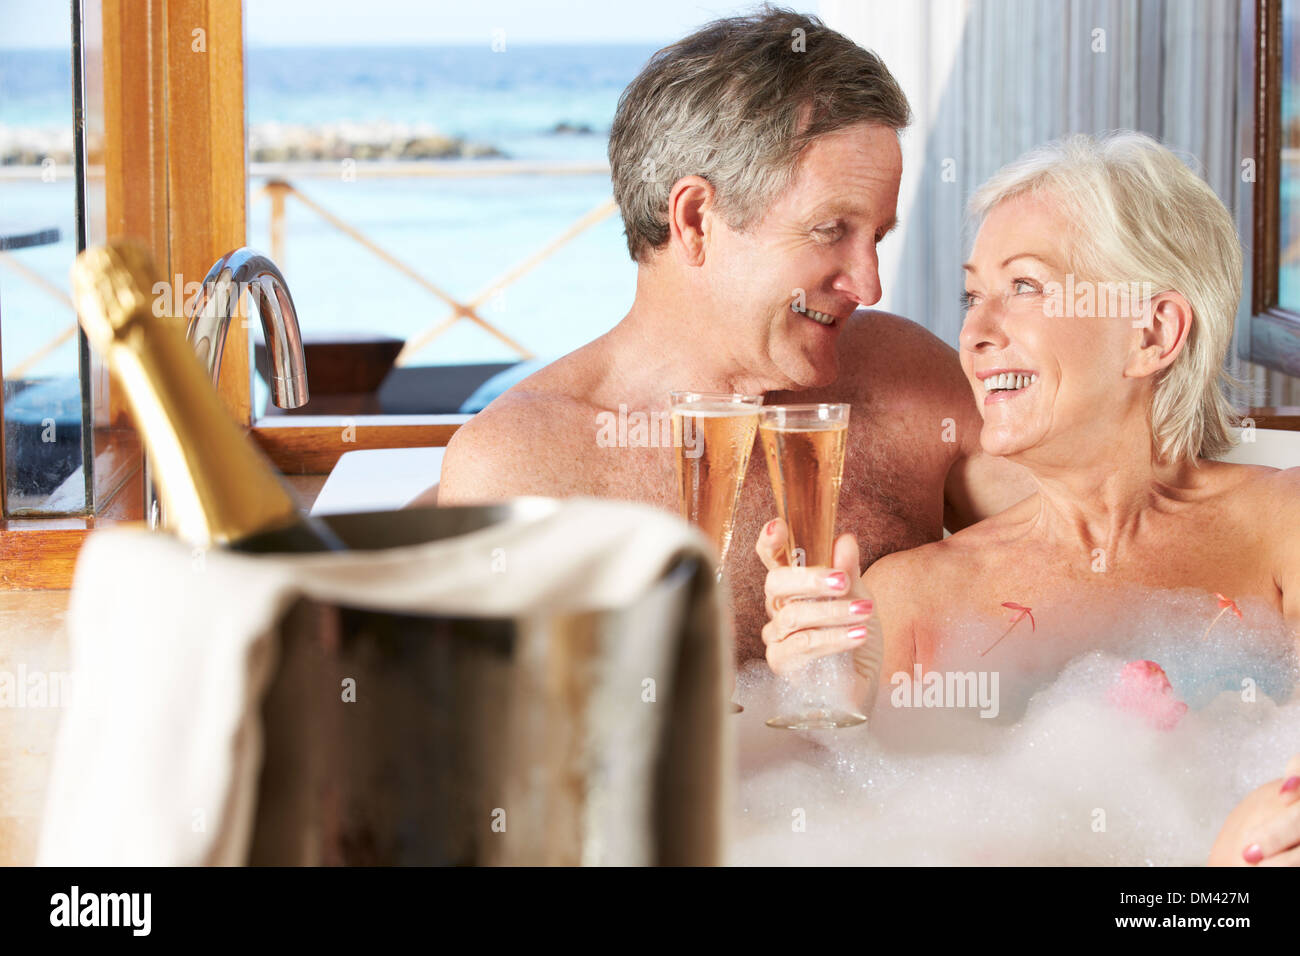 Senior Couple Relaxing In Bath Drinking Champagne Together Photo Stock